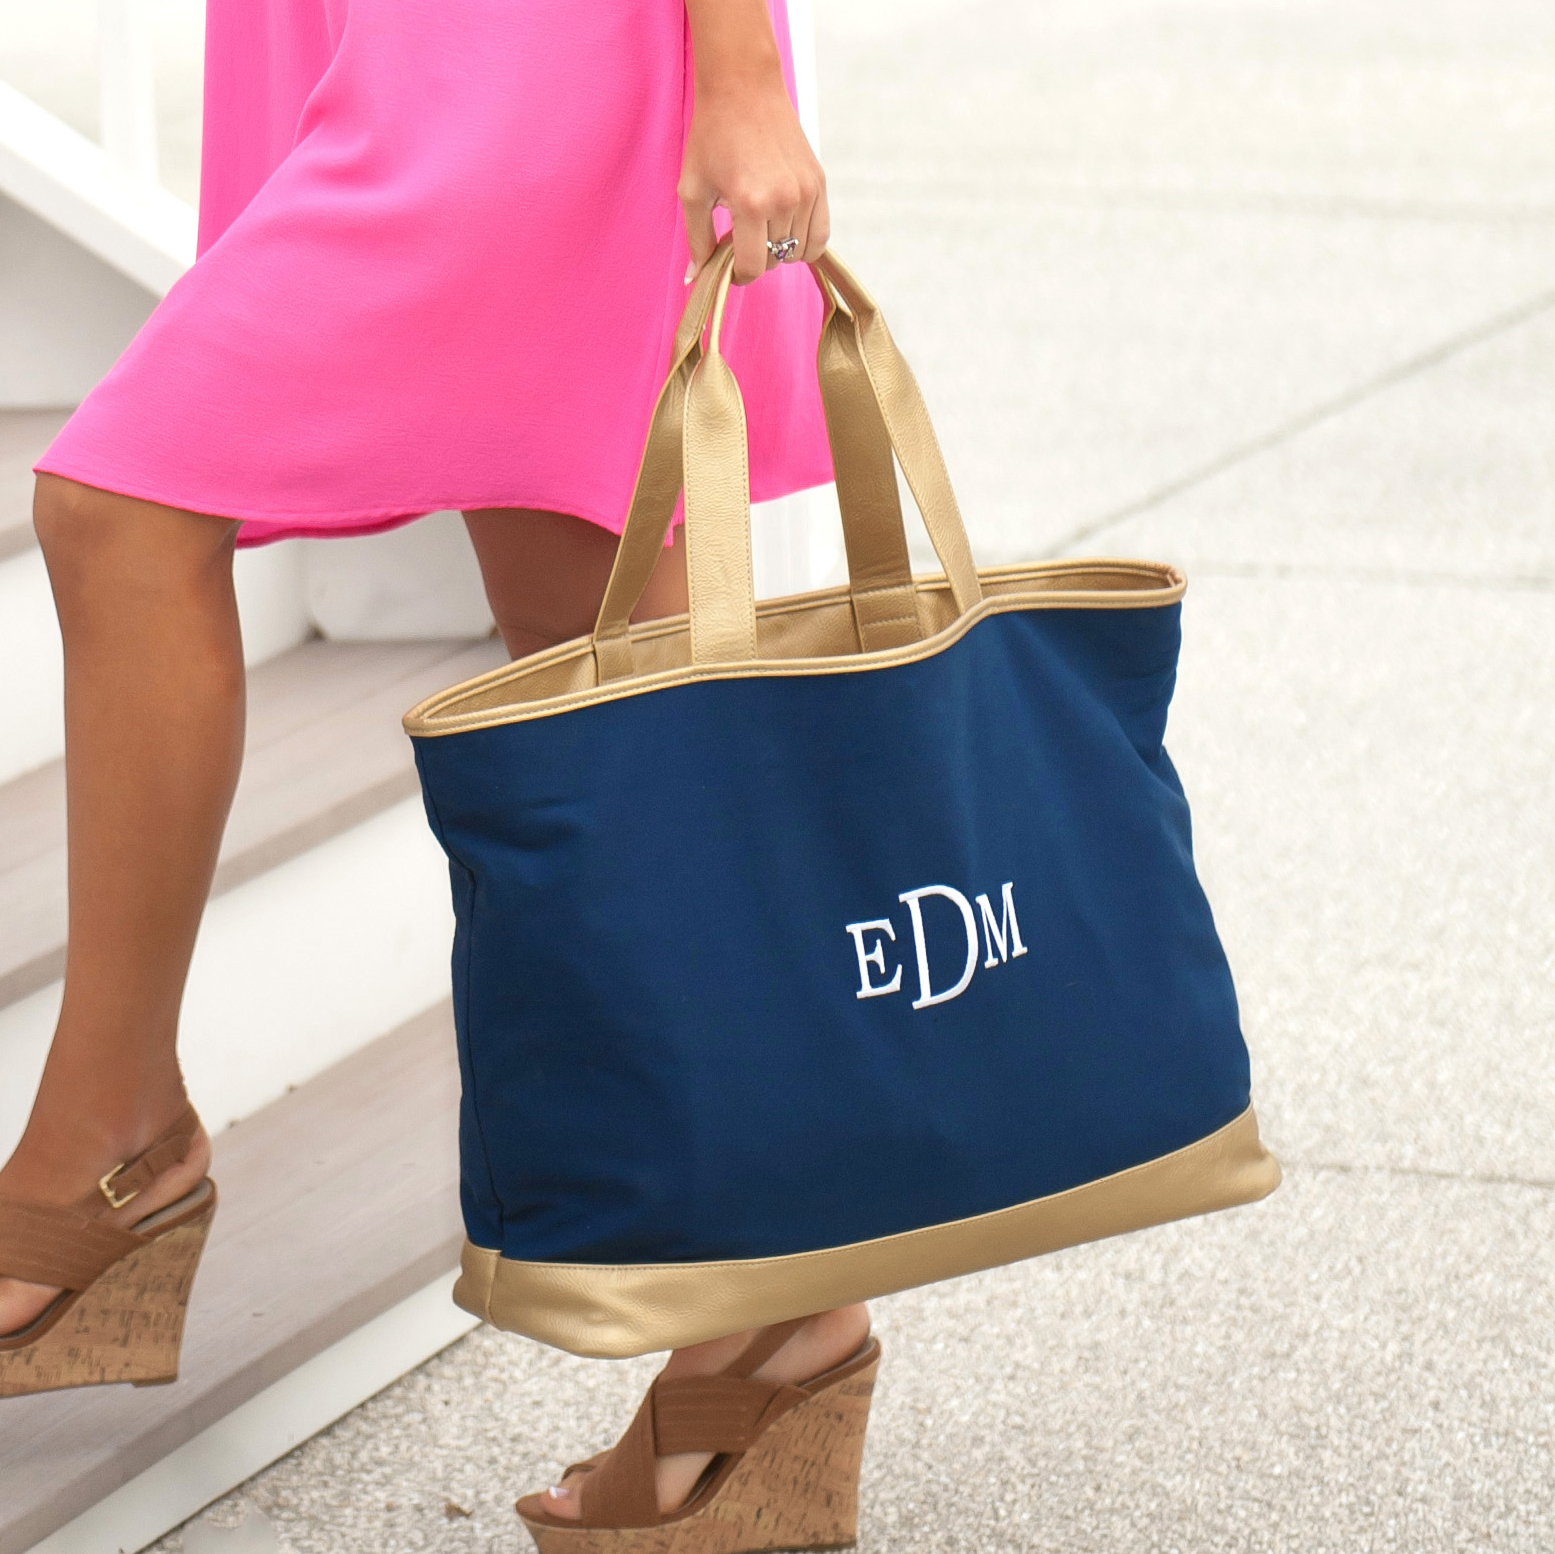 Monogrammed Cabana Tote - 6 Colors Available